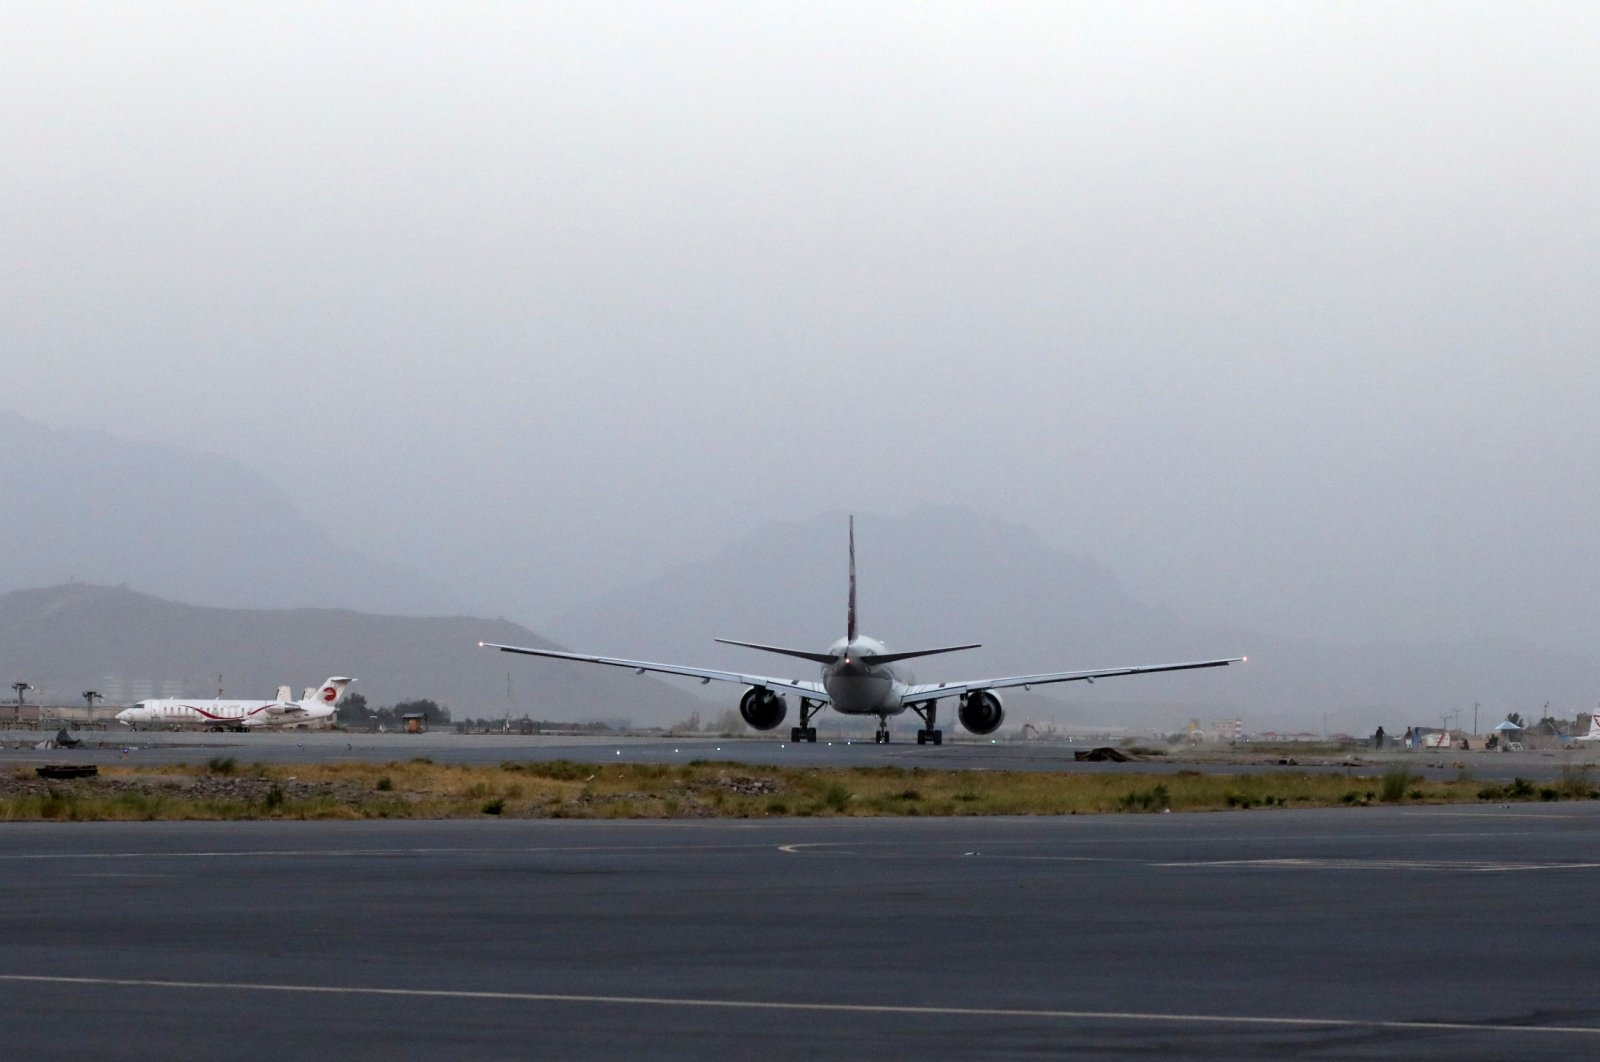 The first international flight from Kabul since the withdrawal of U.S. troops from Afghanistan taxis at the Kabul Hamid Karzai International Airport in Kabul, Afghanistan, Sept. 9, 2021. (REUTERS Photo)